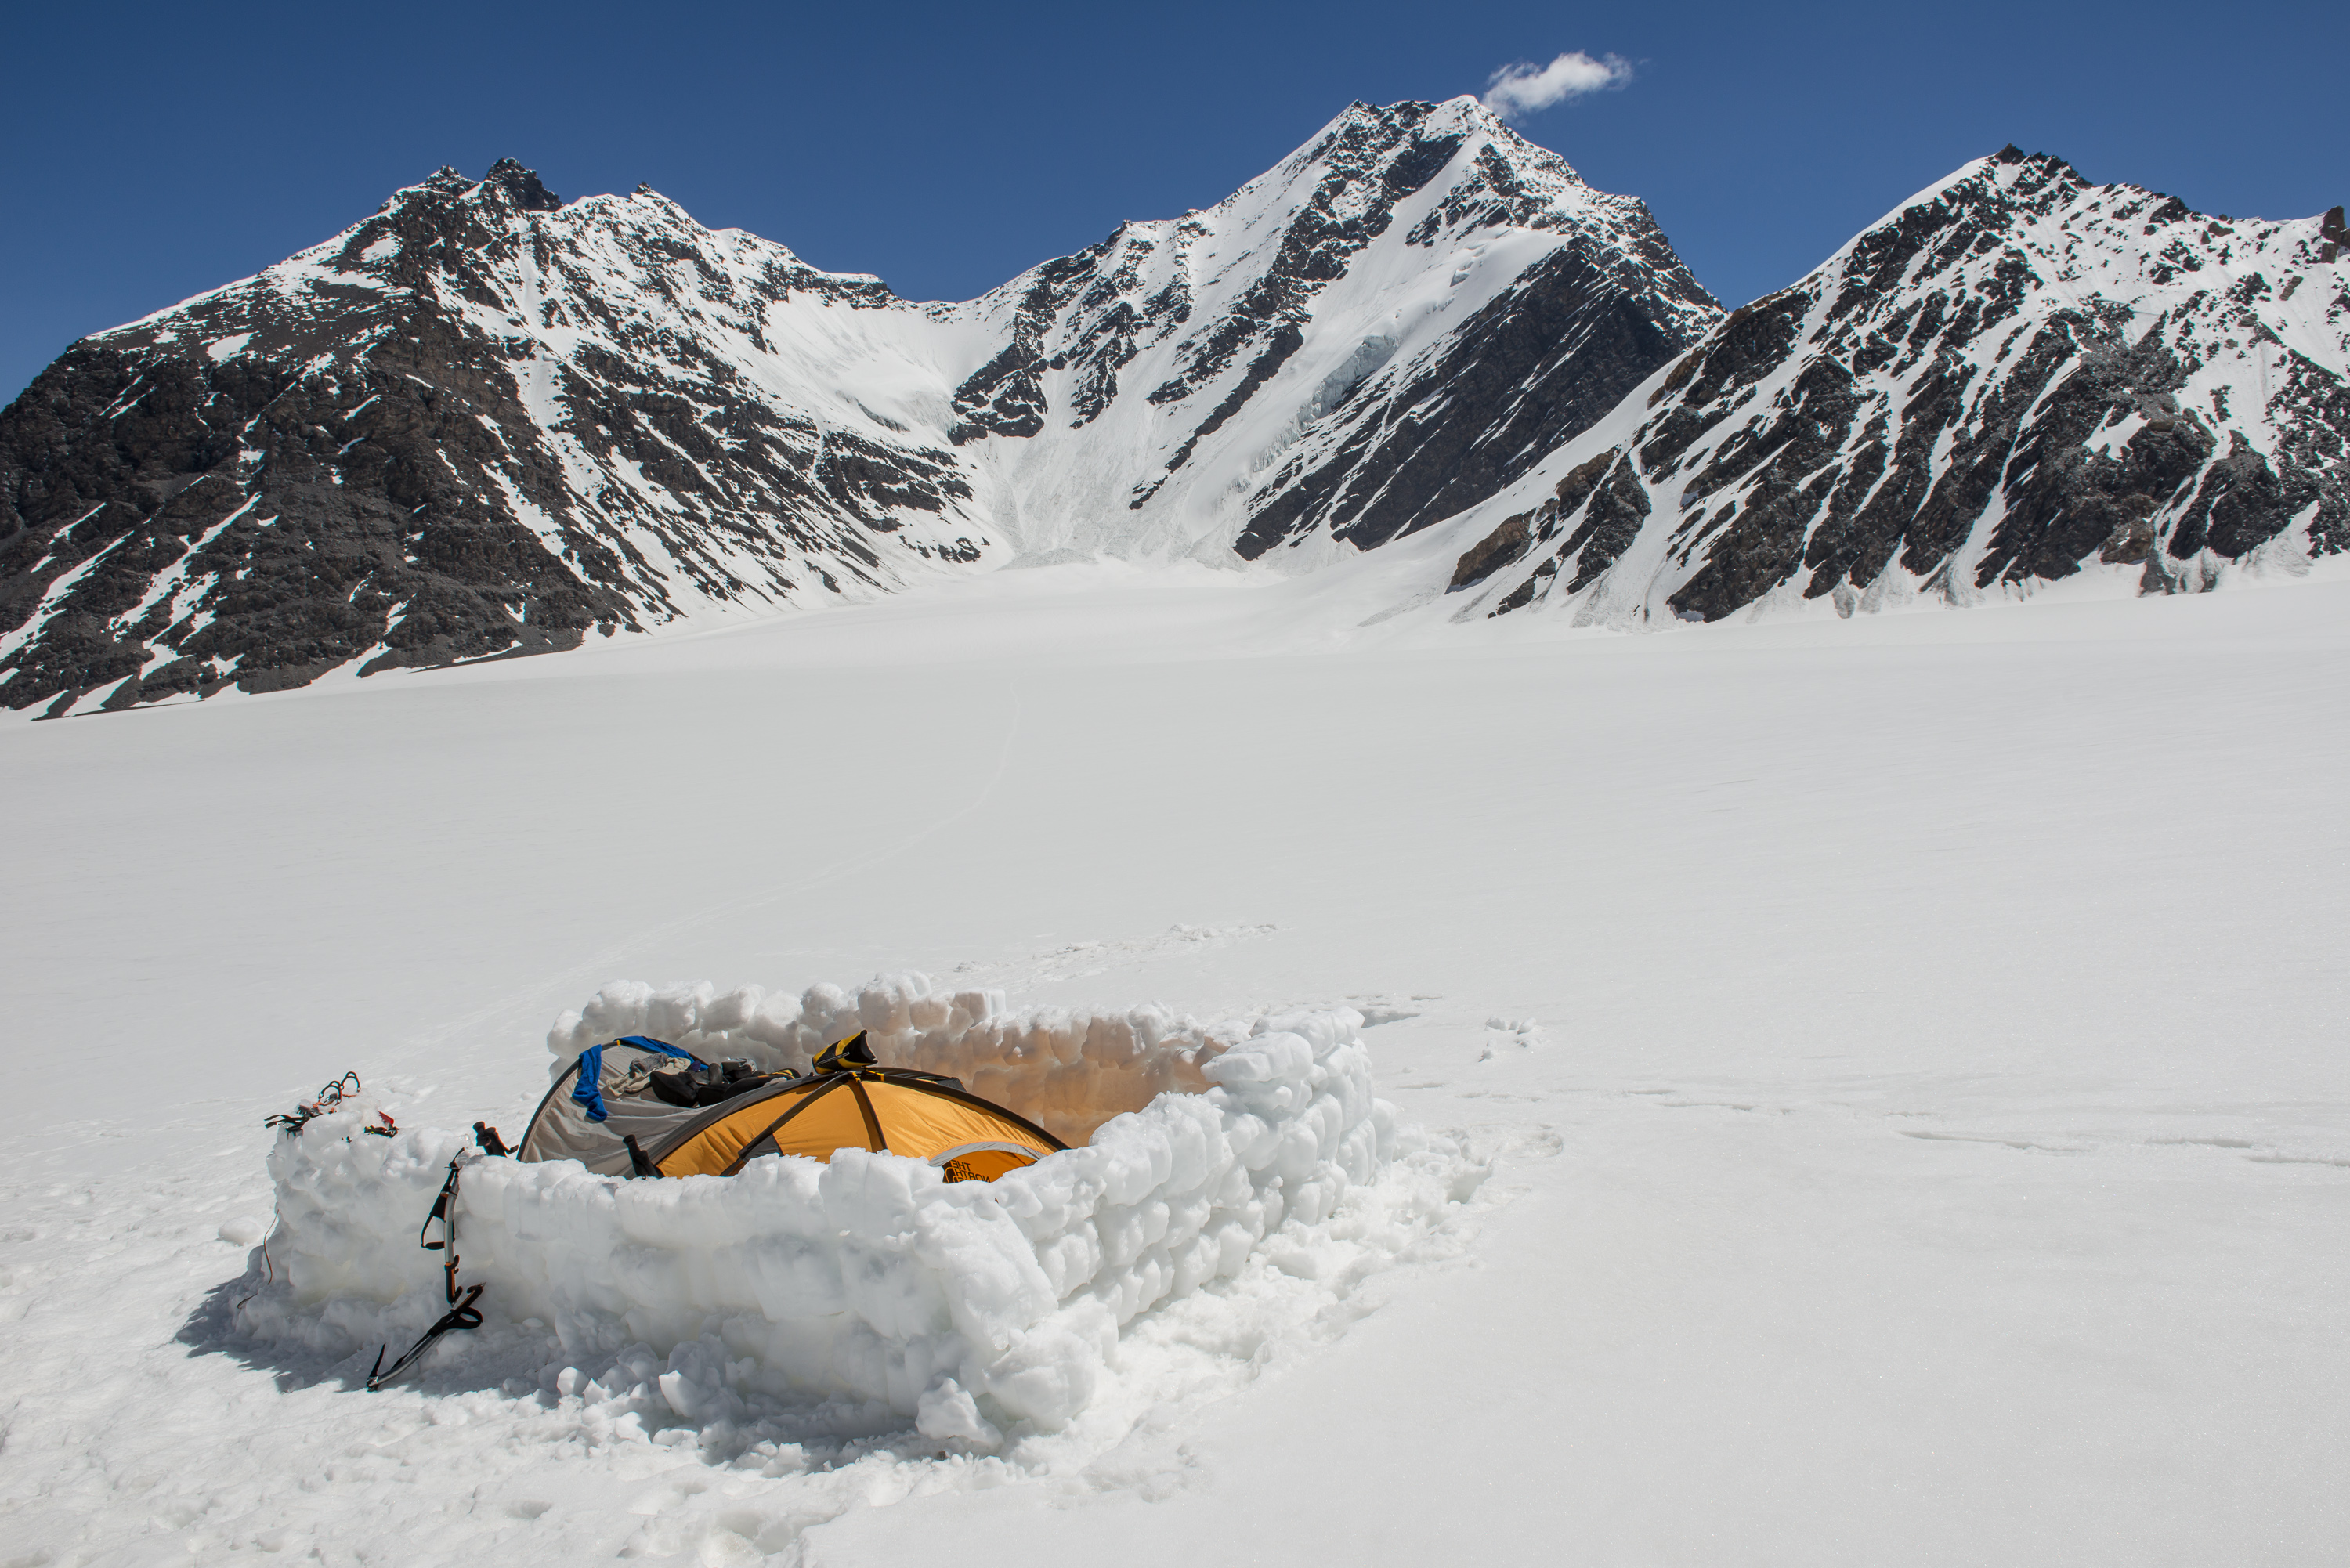 High camp on glacier plateau